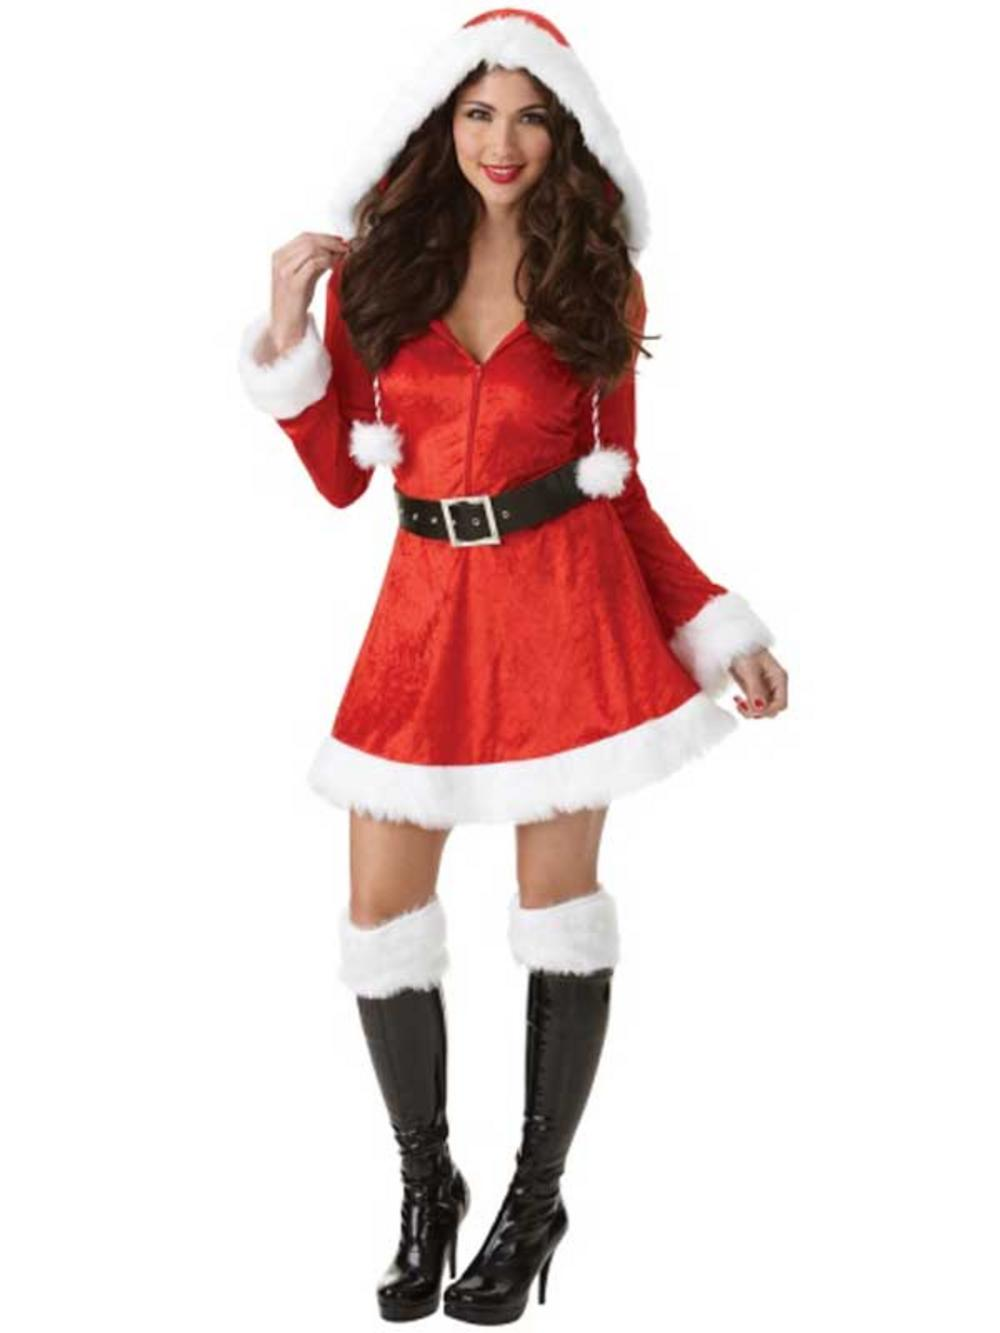 Smiffys Sexy Santa Costume Adult Mrs Claus Outfit Christmas Fancy Dress. Sold by 7th Avenue Store. add to compare compare now. $ $ Fun World Costumes Red and White Santa Claus Body Skin Suit Christmas Costume - Adult Size. Sold by Christmas Central. add to compare compare now.